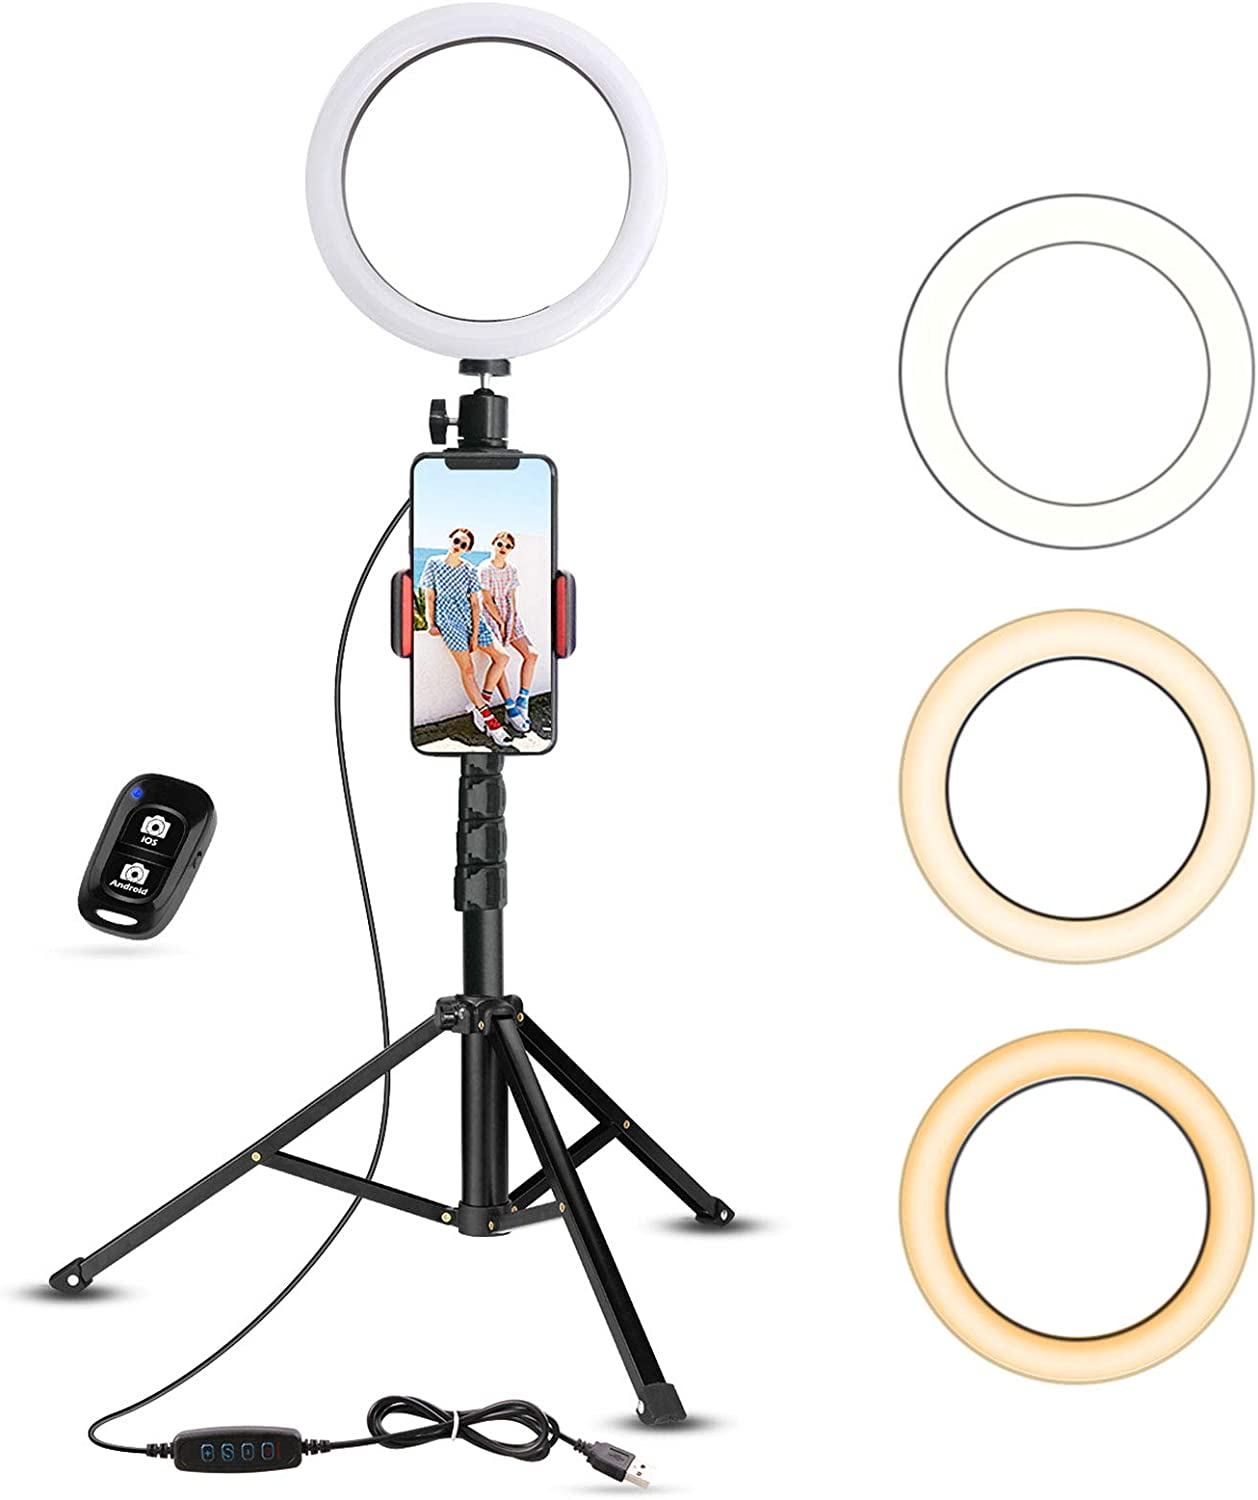 UBeesize Mobile Flashes & Selfie Lights $23.79 Coupon